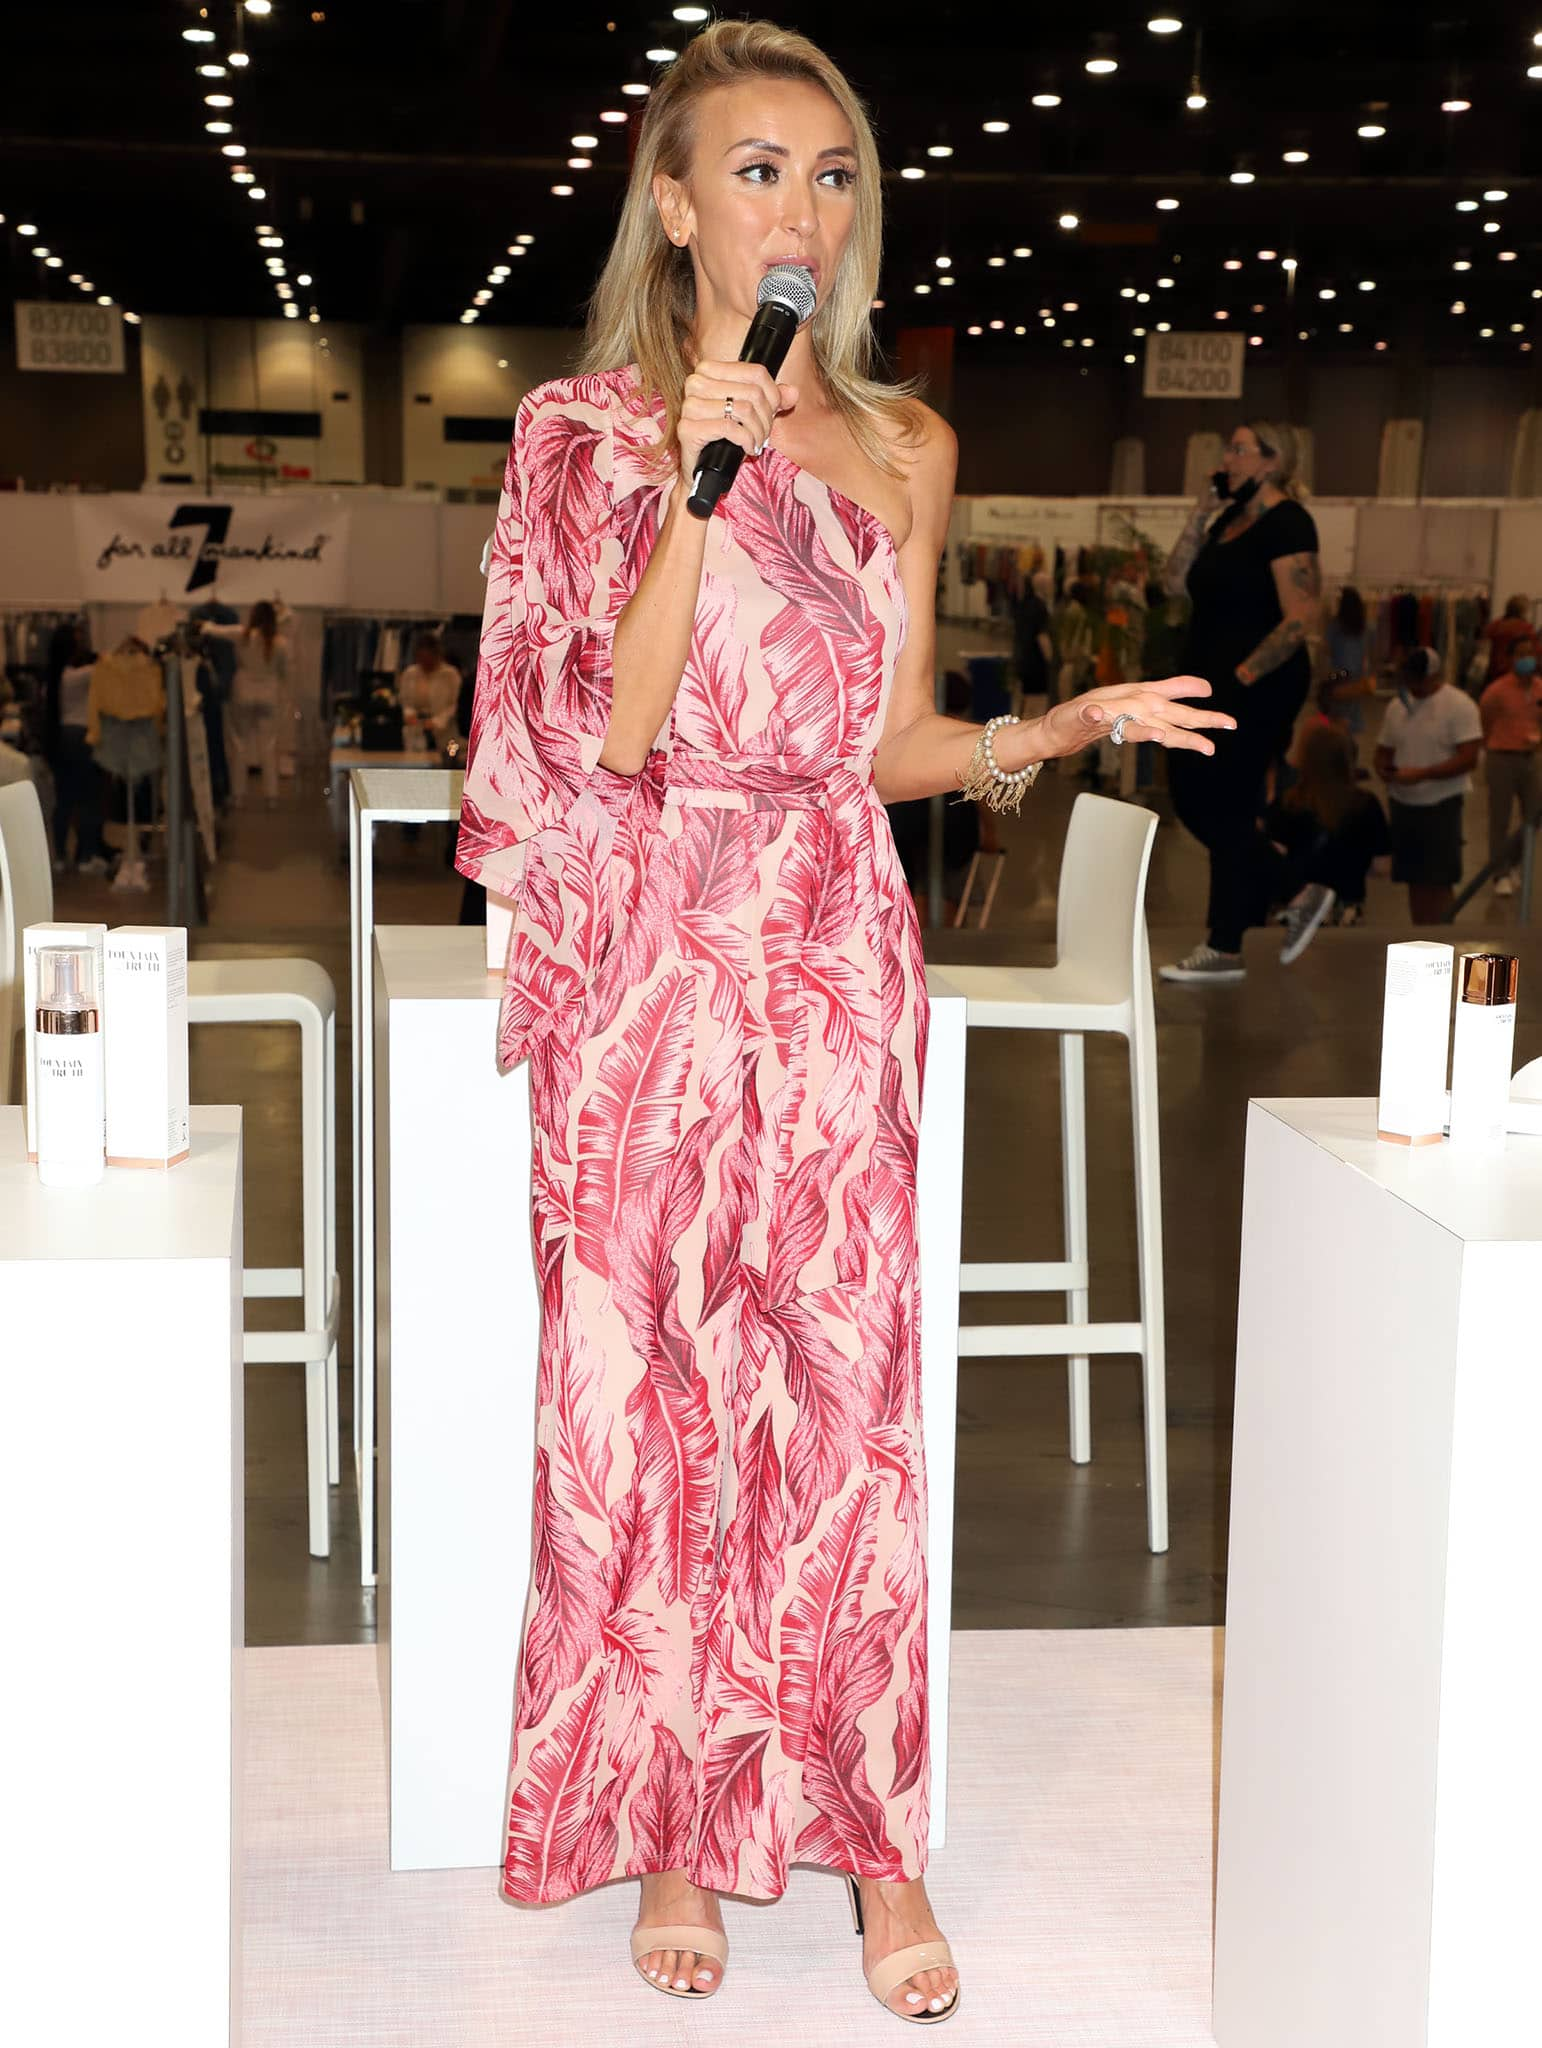 Giuliana Rancic's jumpsuit features pink banana leaf prints and a high-low long sleeve